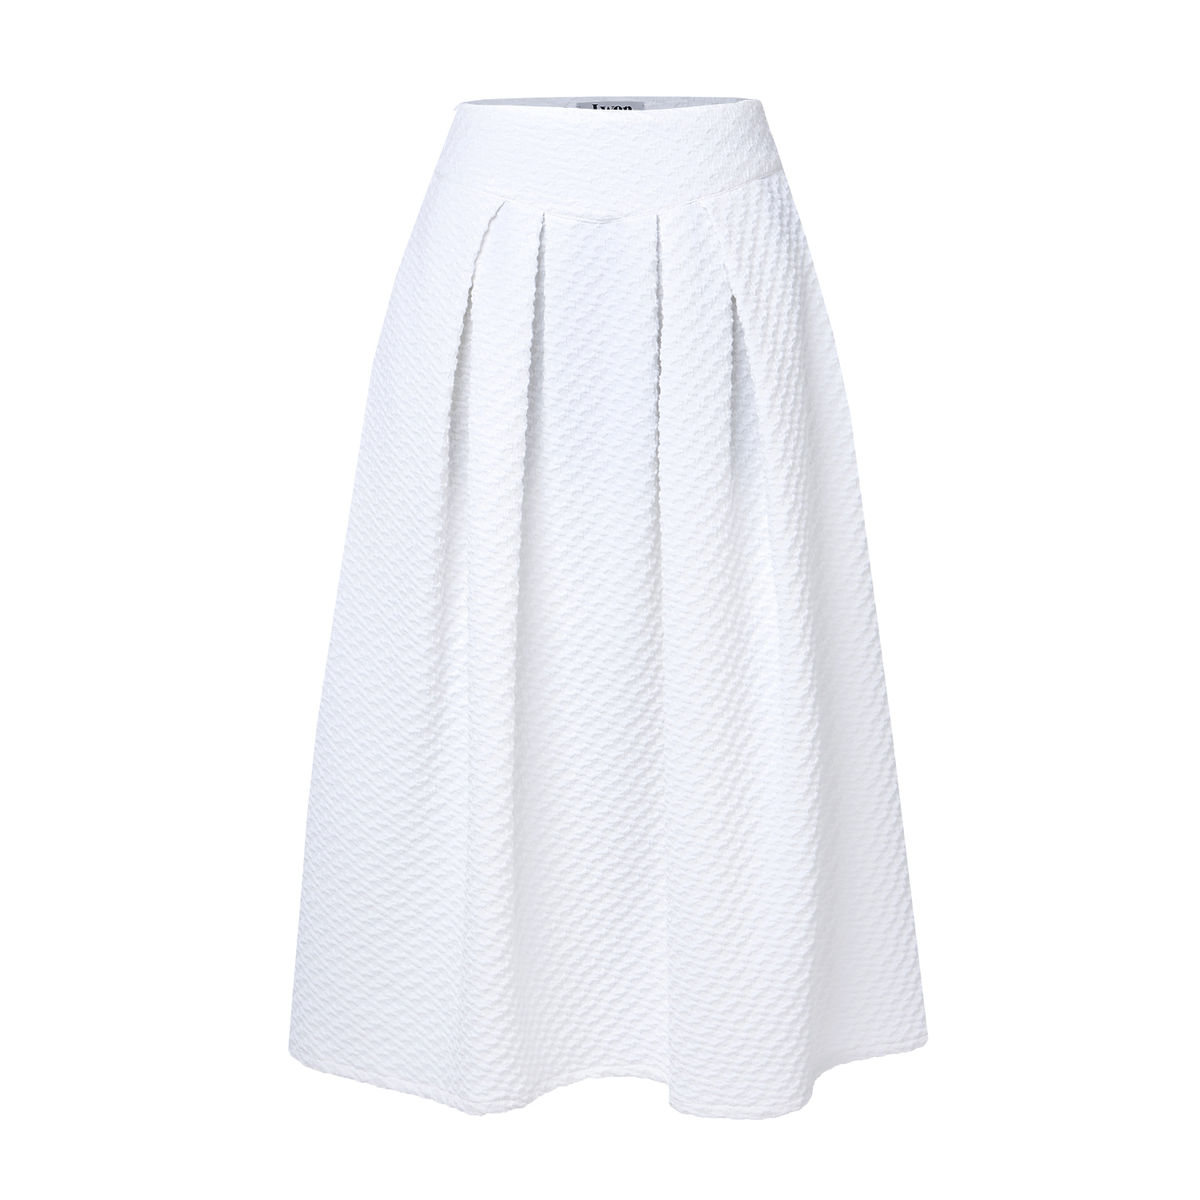 Long 'Lolita' skirts - product images  of